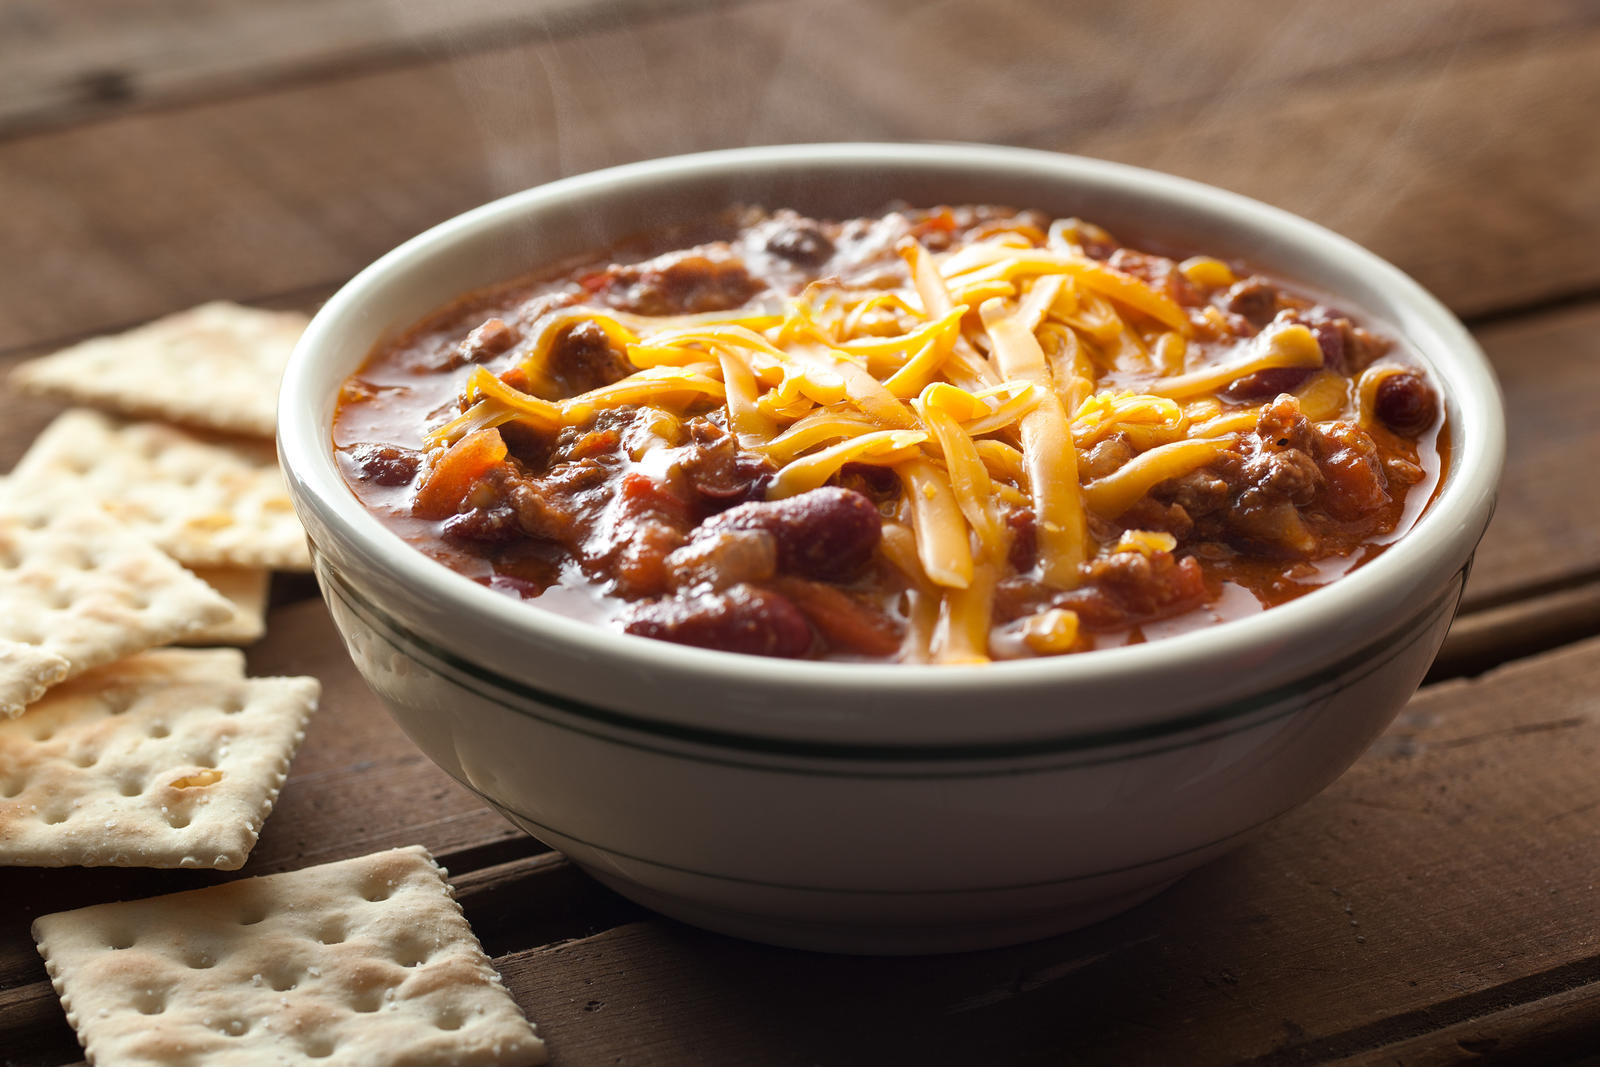 Slow Cooker Side Dishes For Bbq  11 Slow Cooker Side Dish Recipes for Your Next BBQ Chowhound